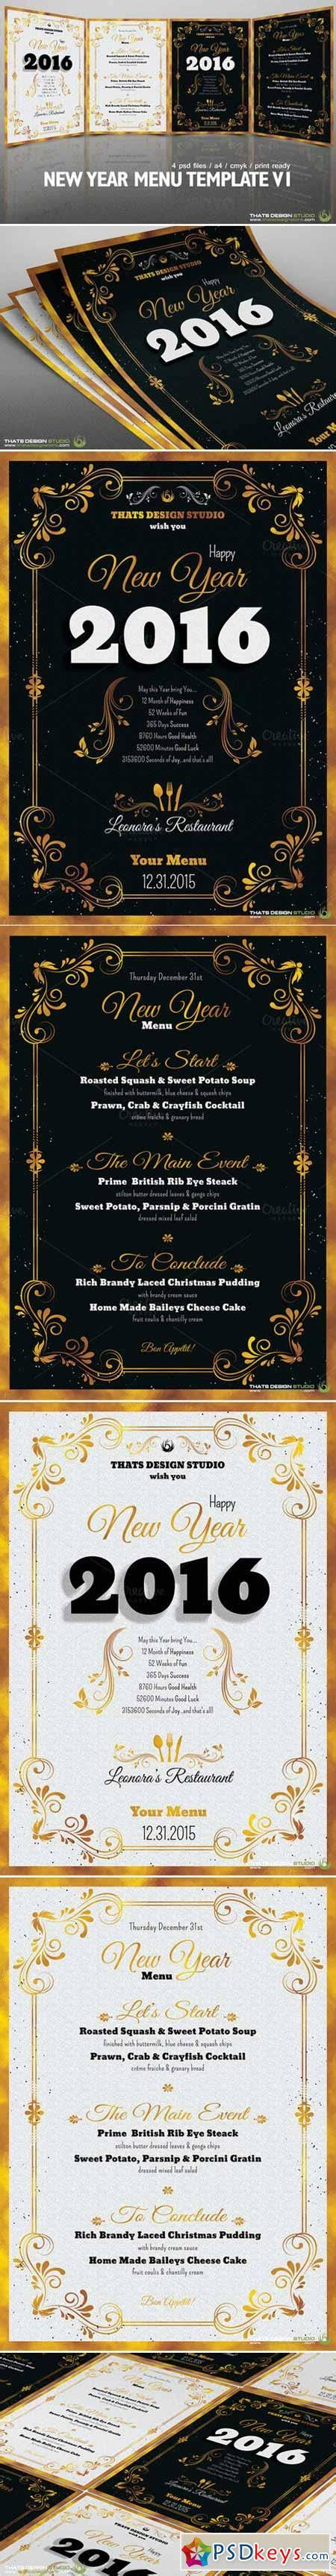 free new year menu template new year menu template v1 448521 187 free photoshop